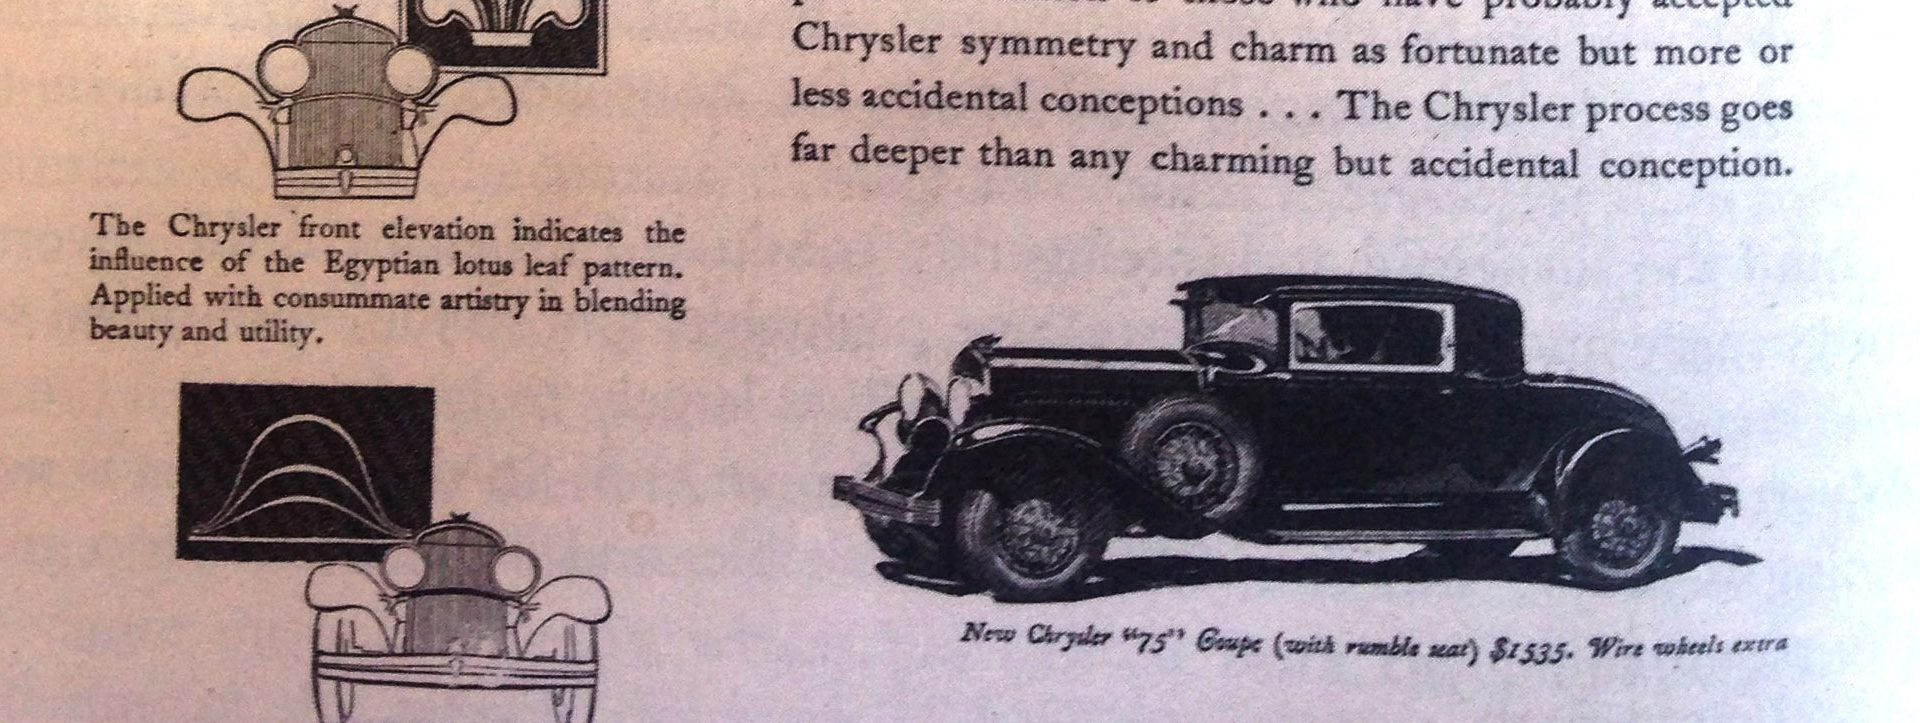 The Chrysler Motor Company and Classical Art